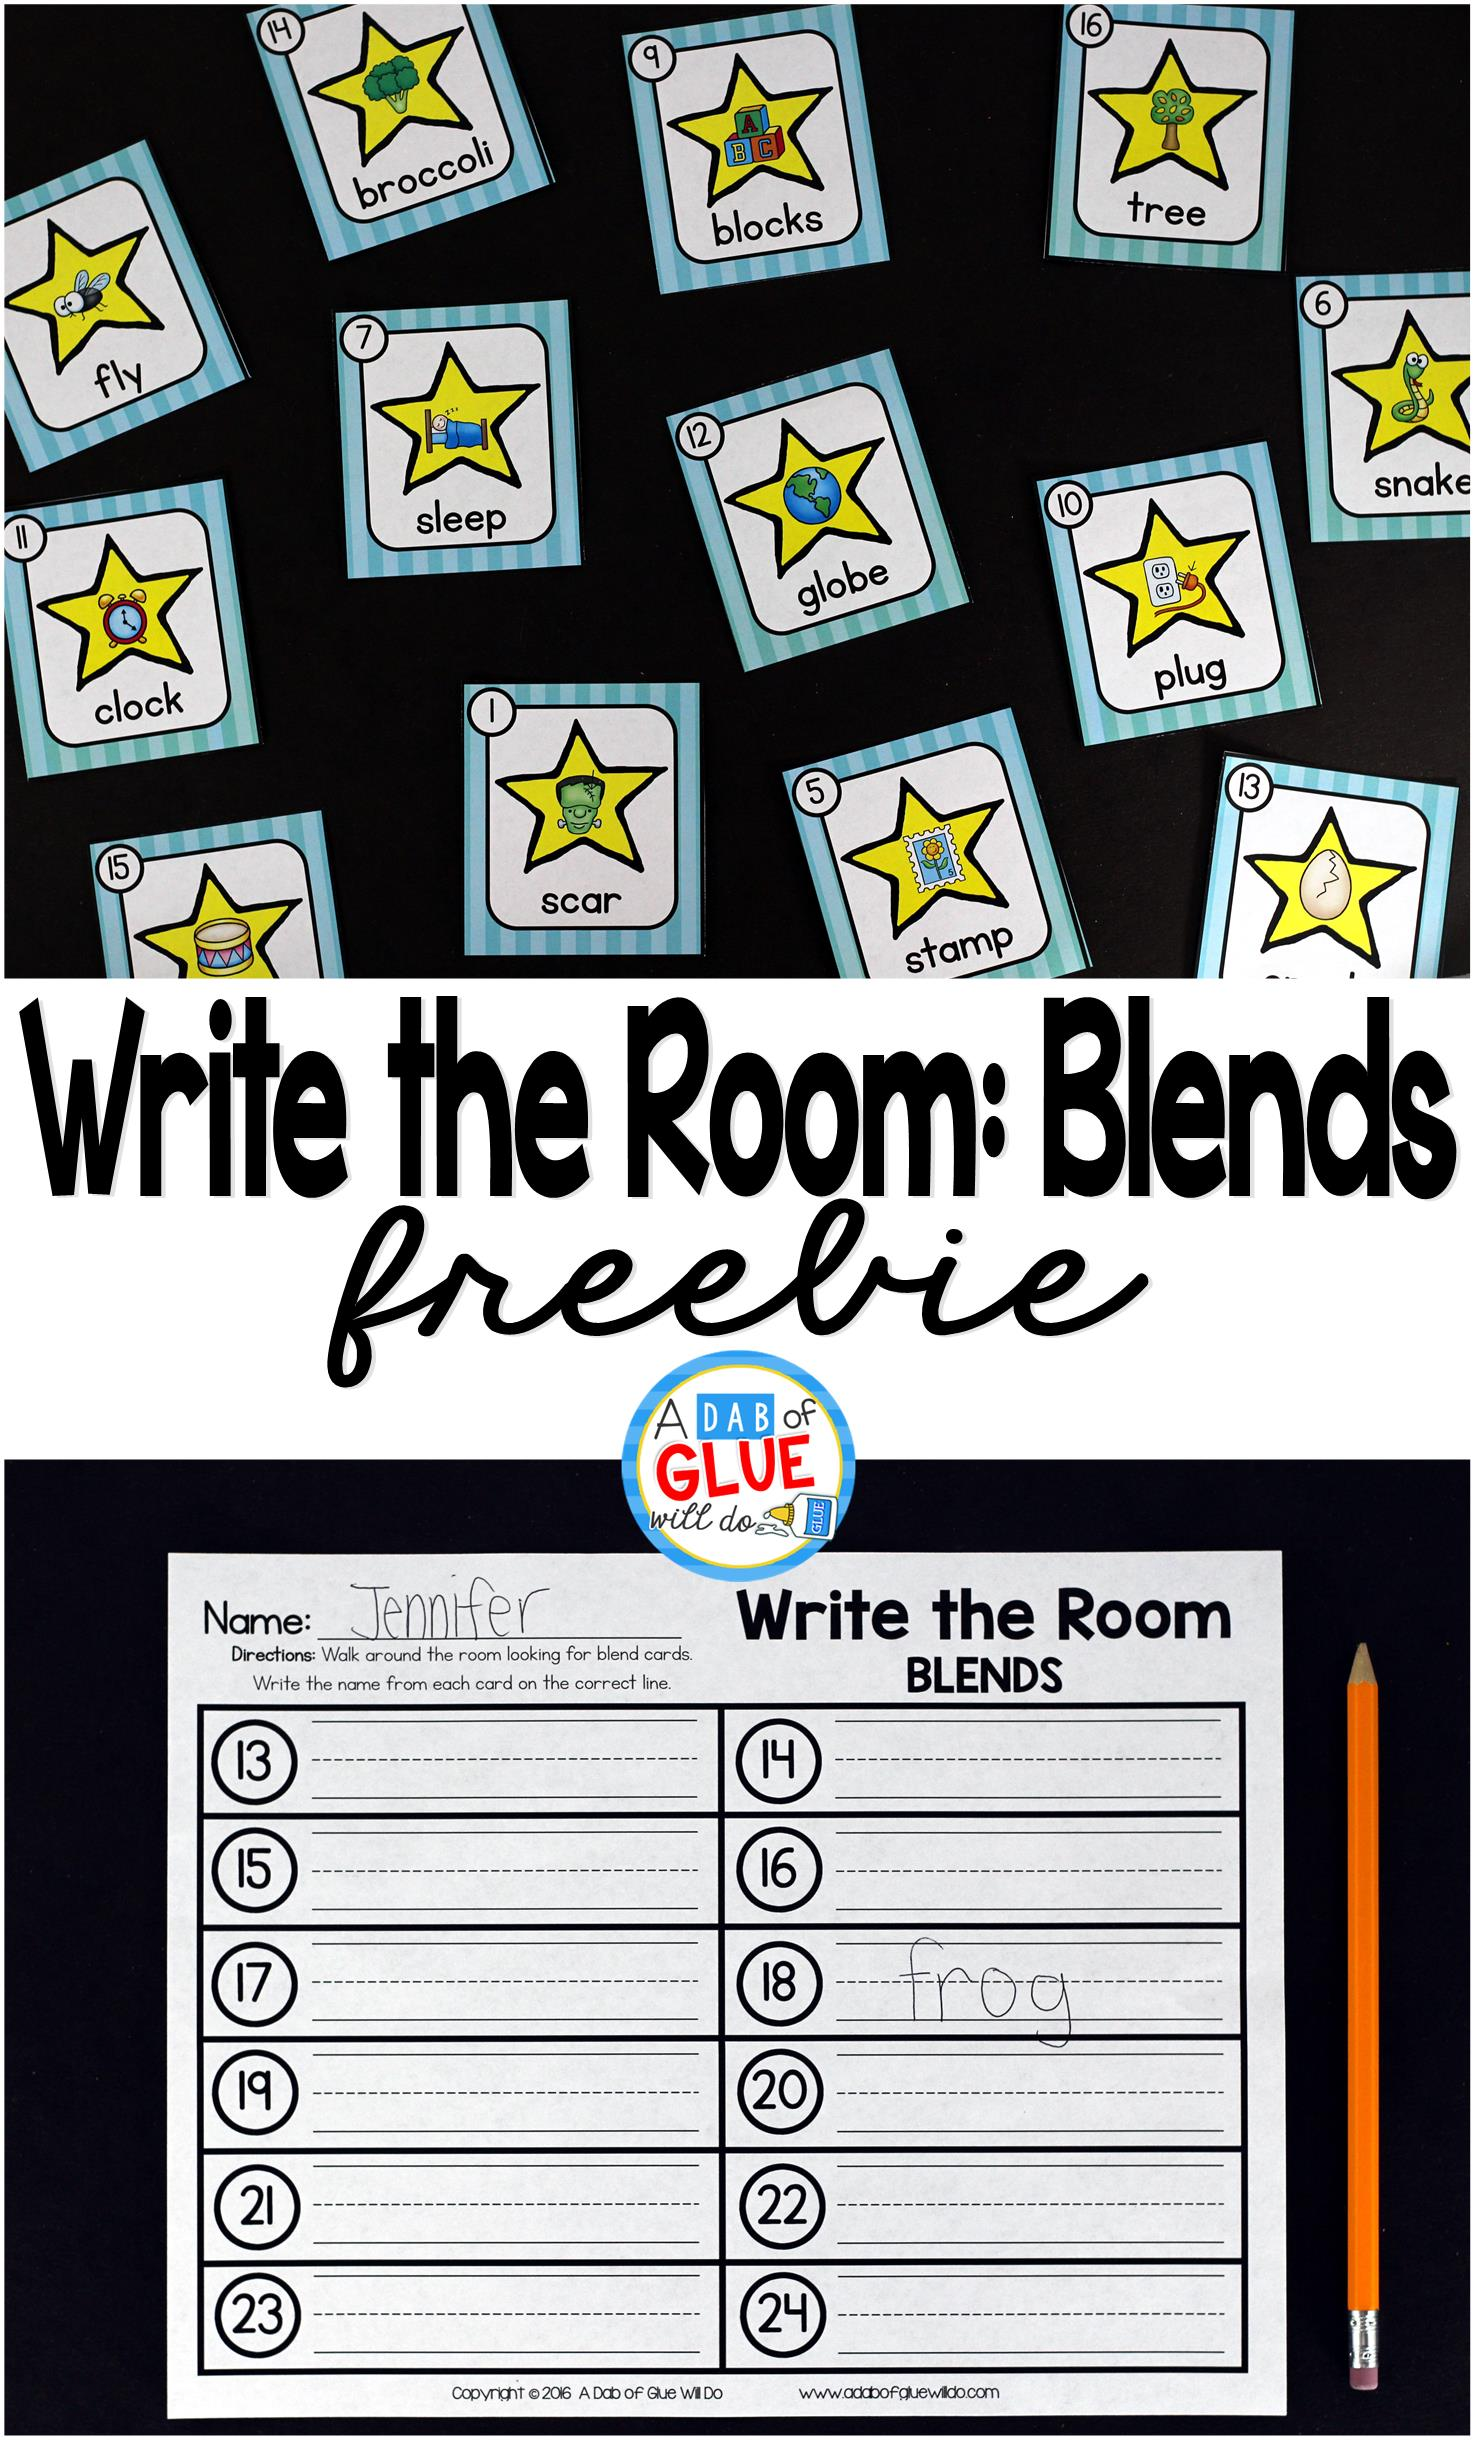 Super fun star-themed blends write the room for Kindergarten and First Grade!